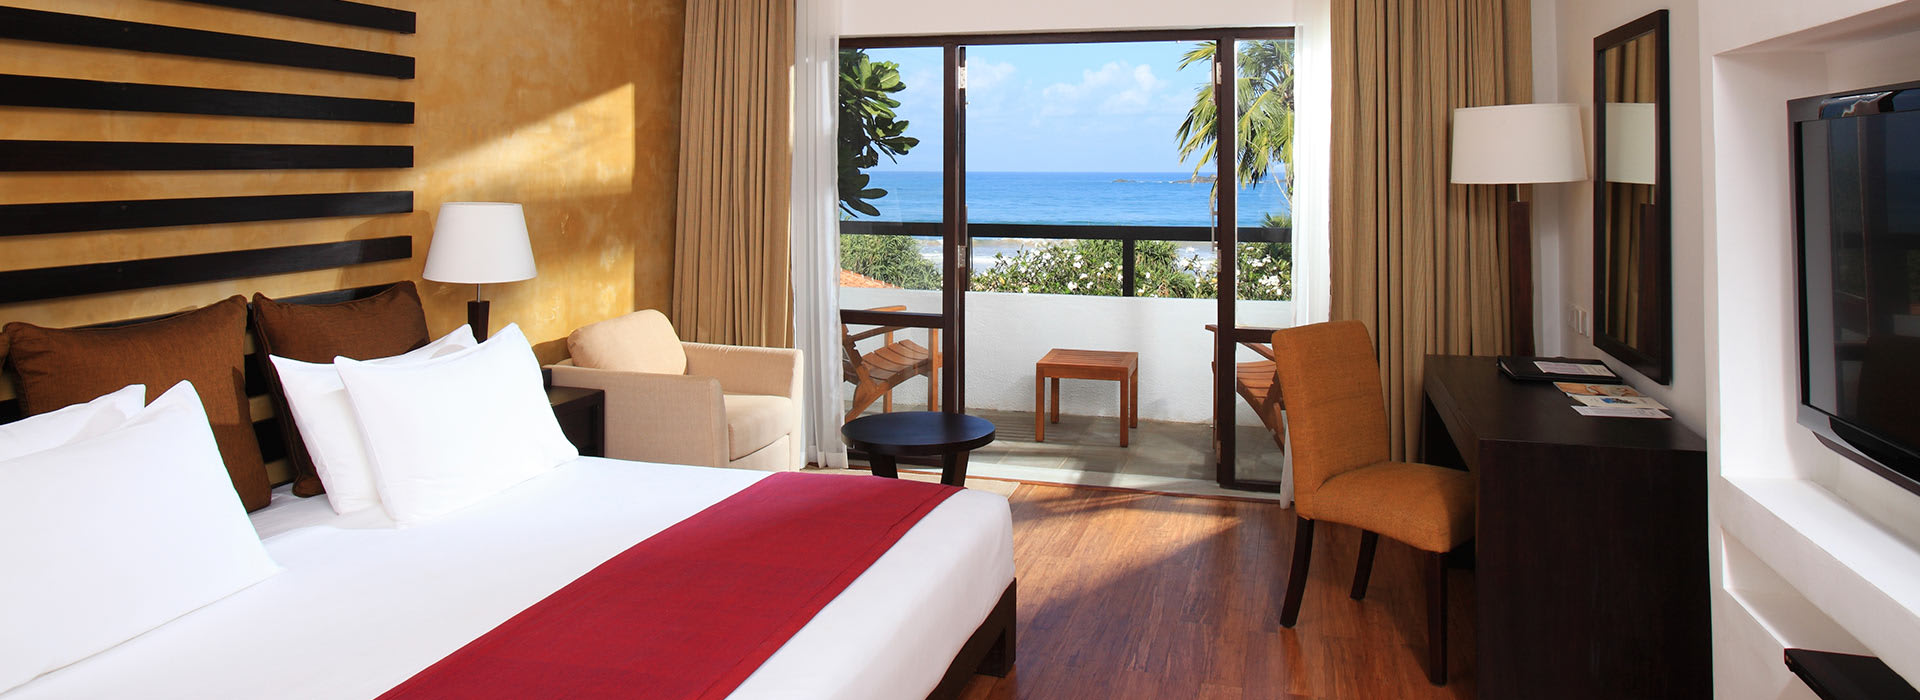 A superior room at AVANI Bentota Resort